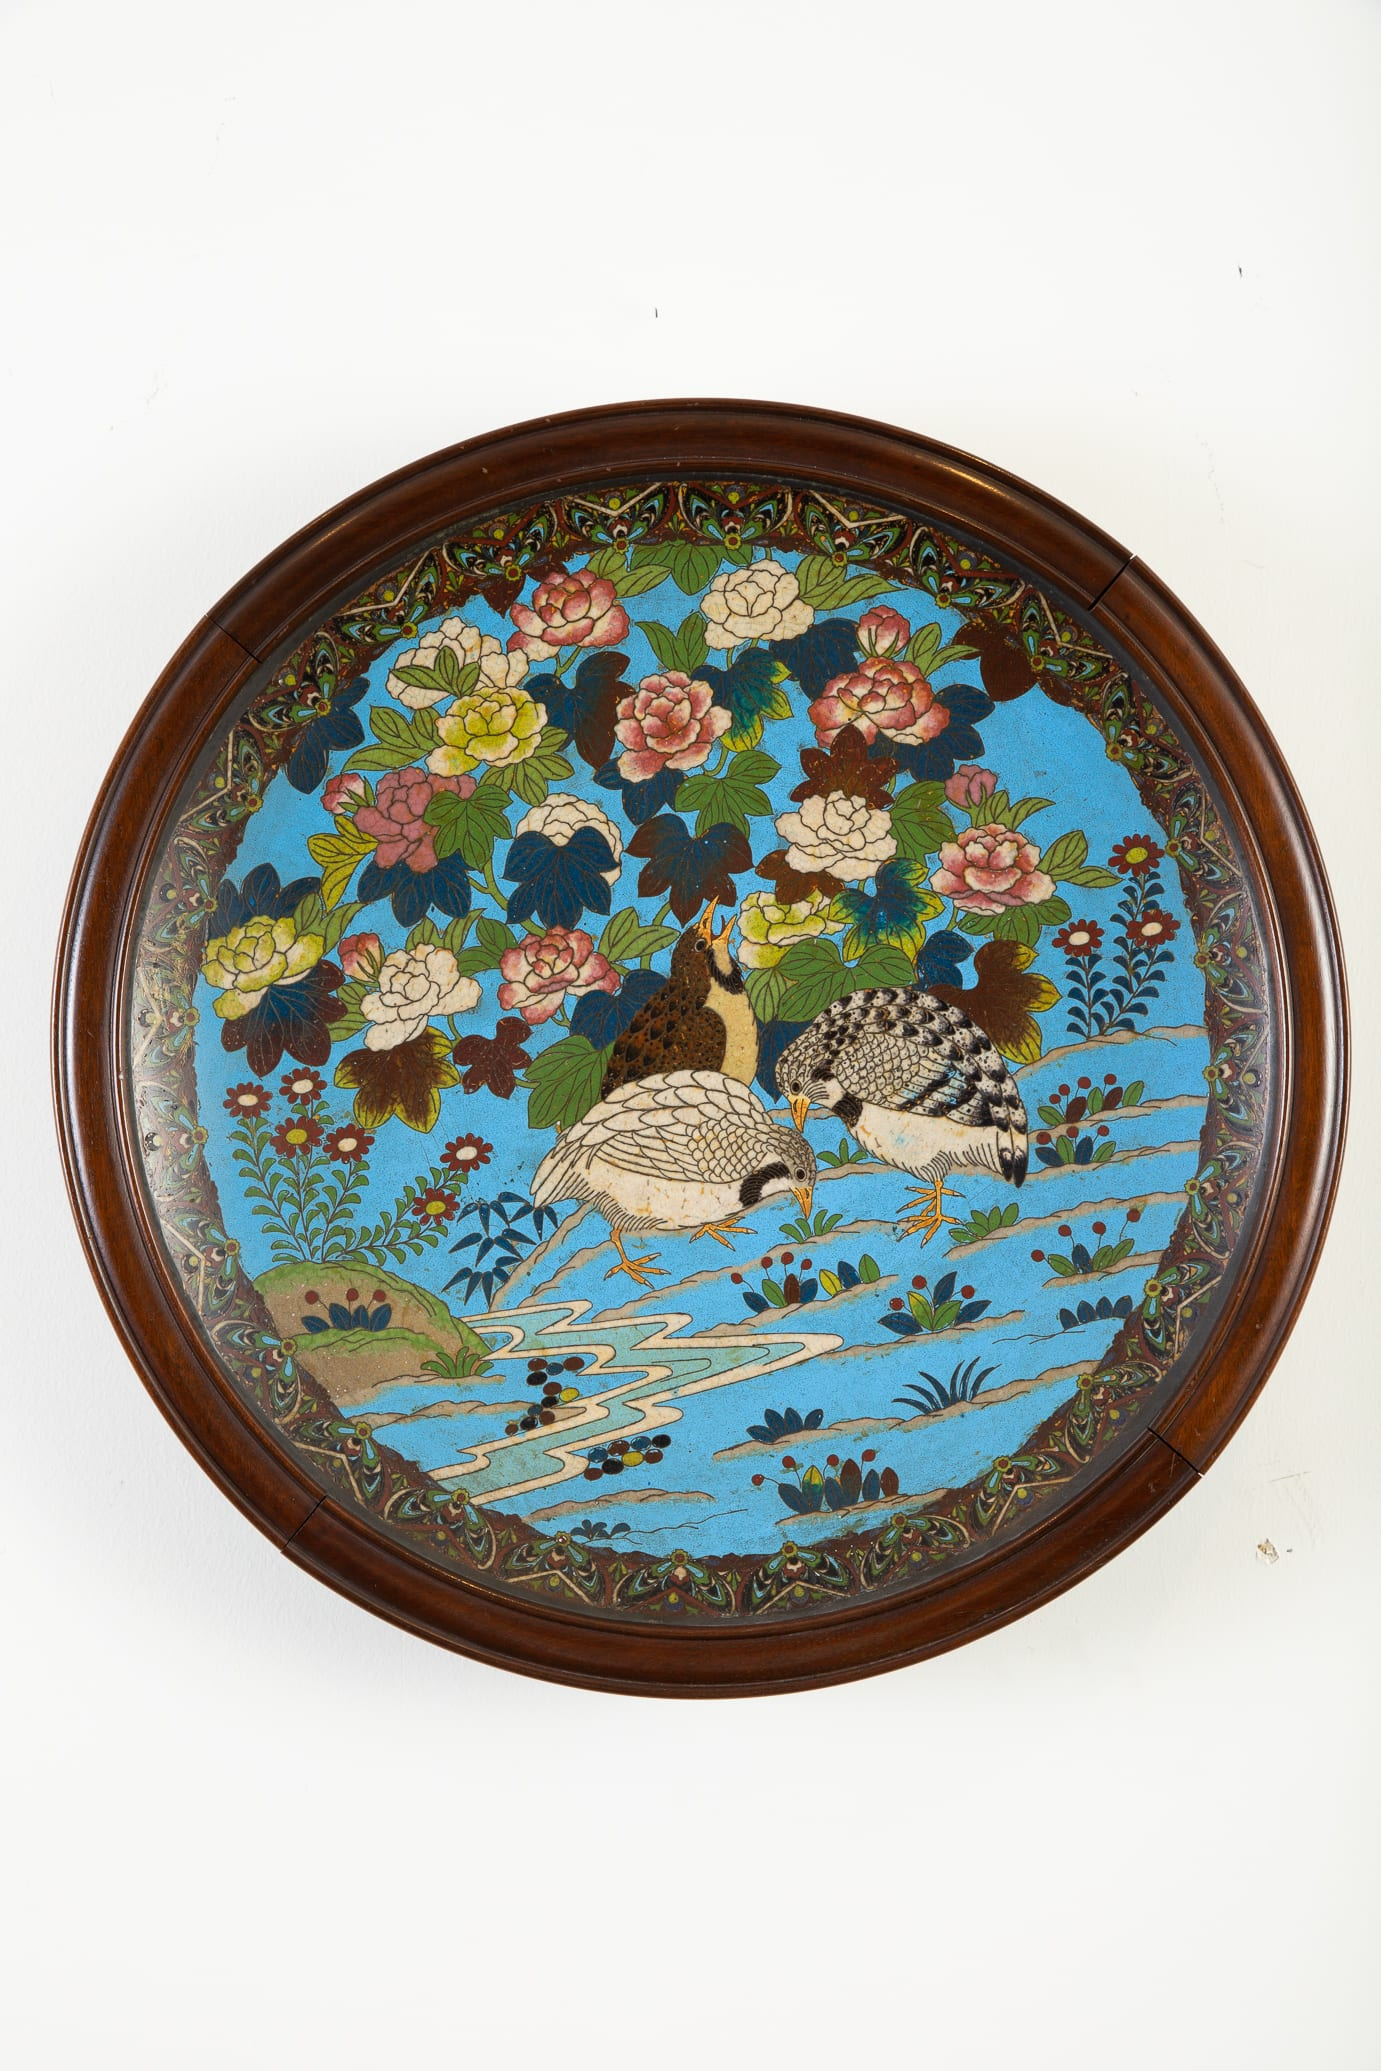 Lot 021: Japanese Meiji Cloisonne Tray with Flowers Birds